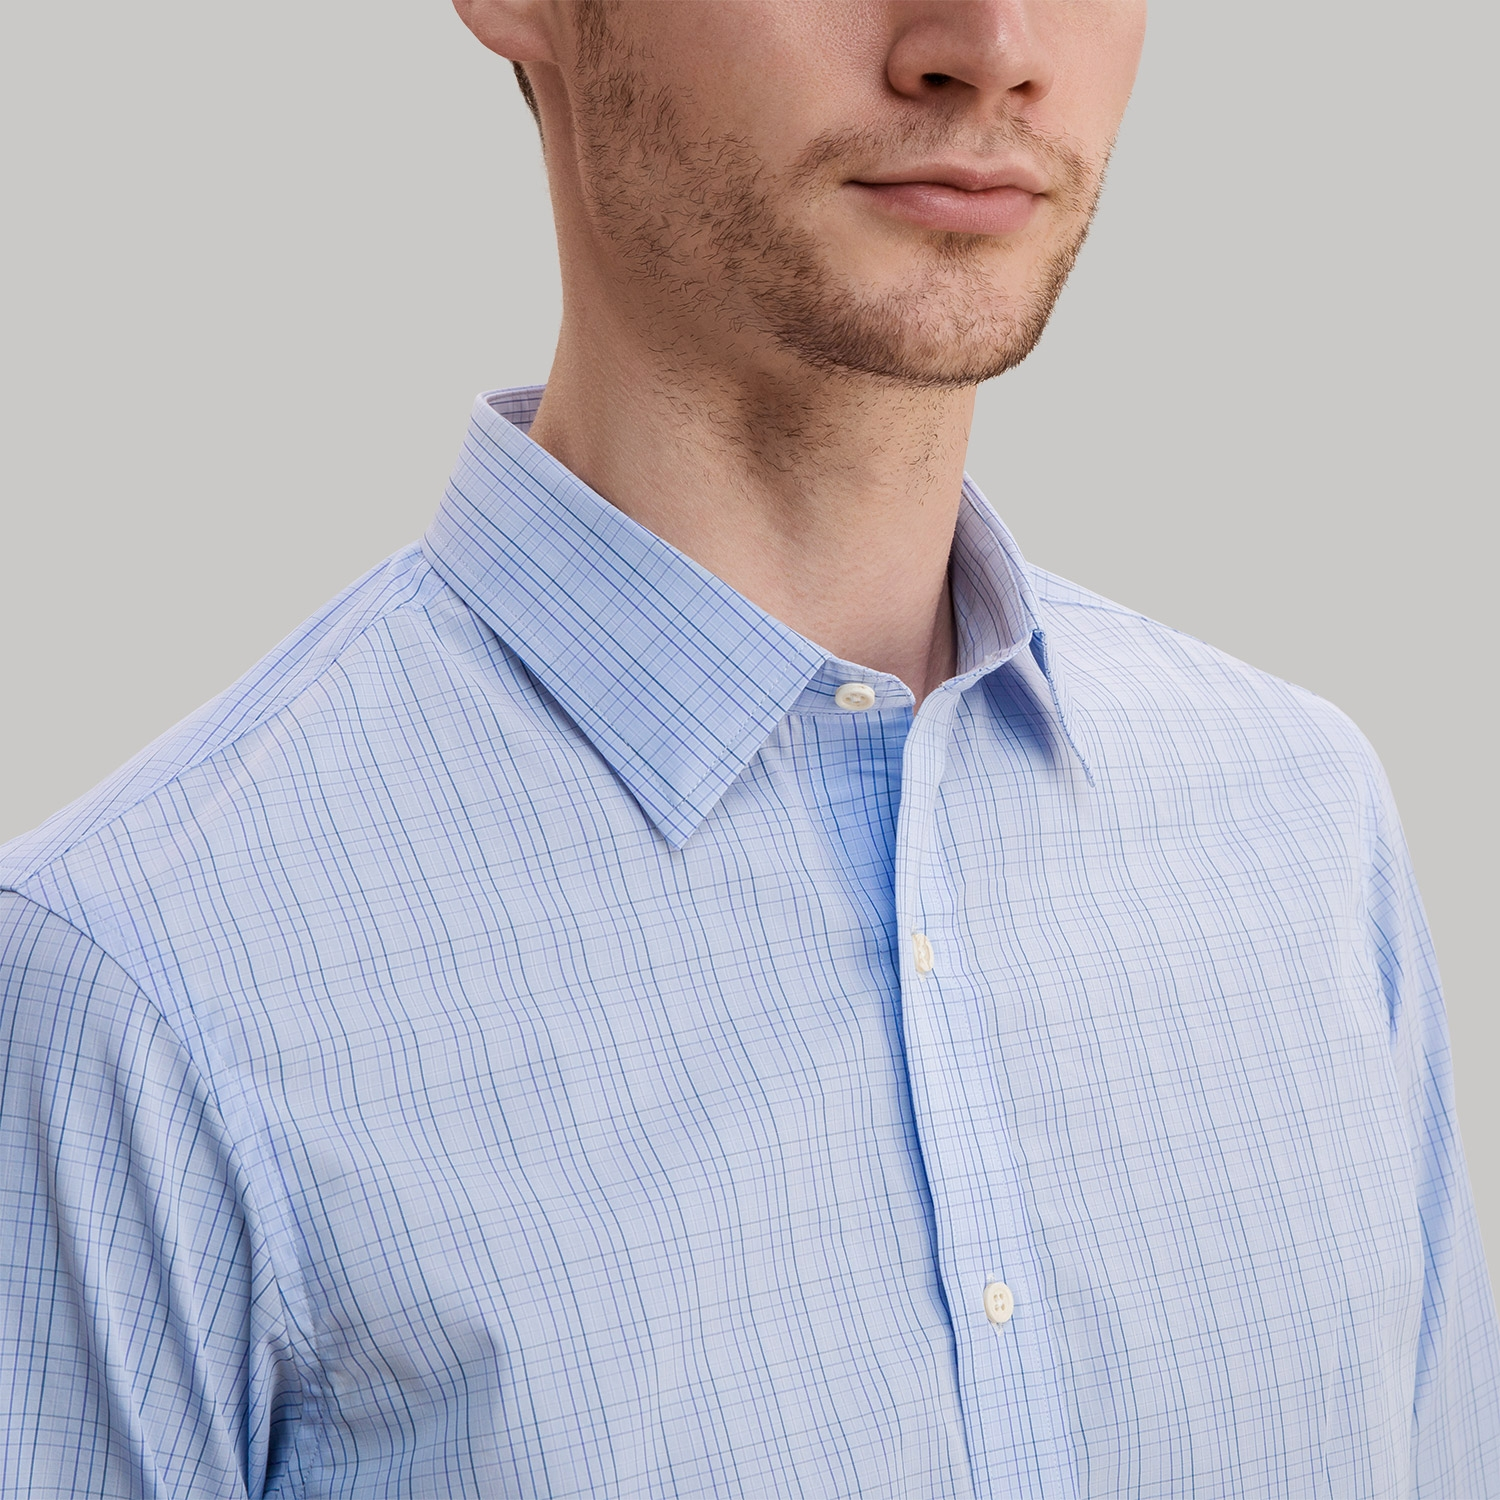 Classic Office Shirts